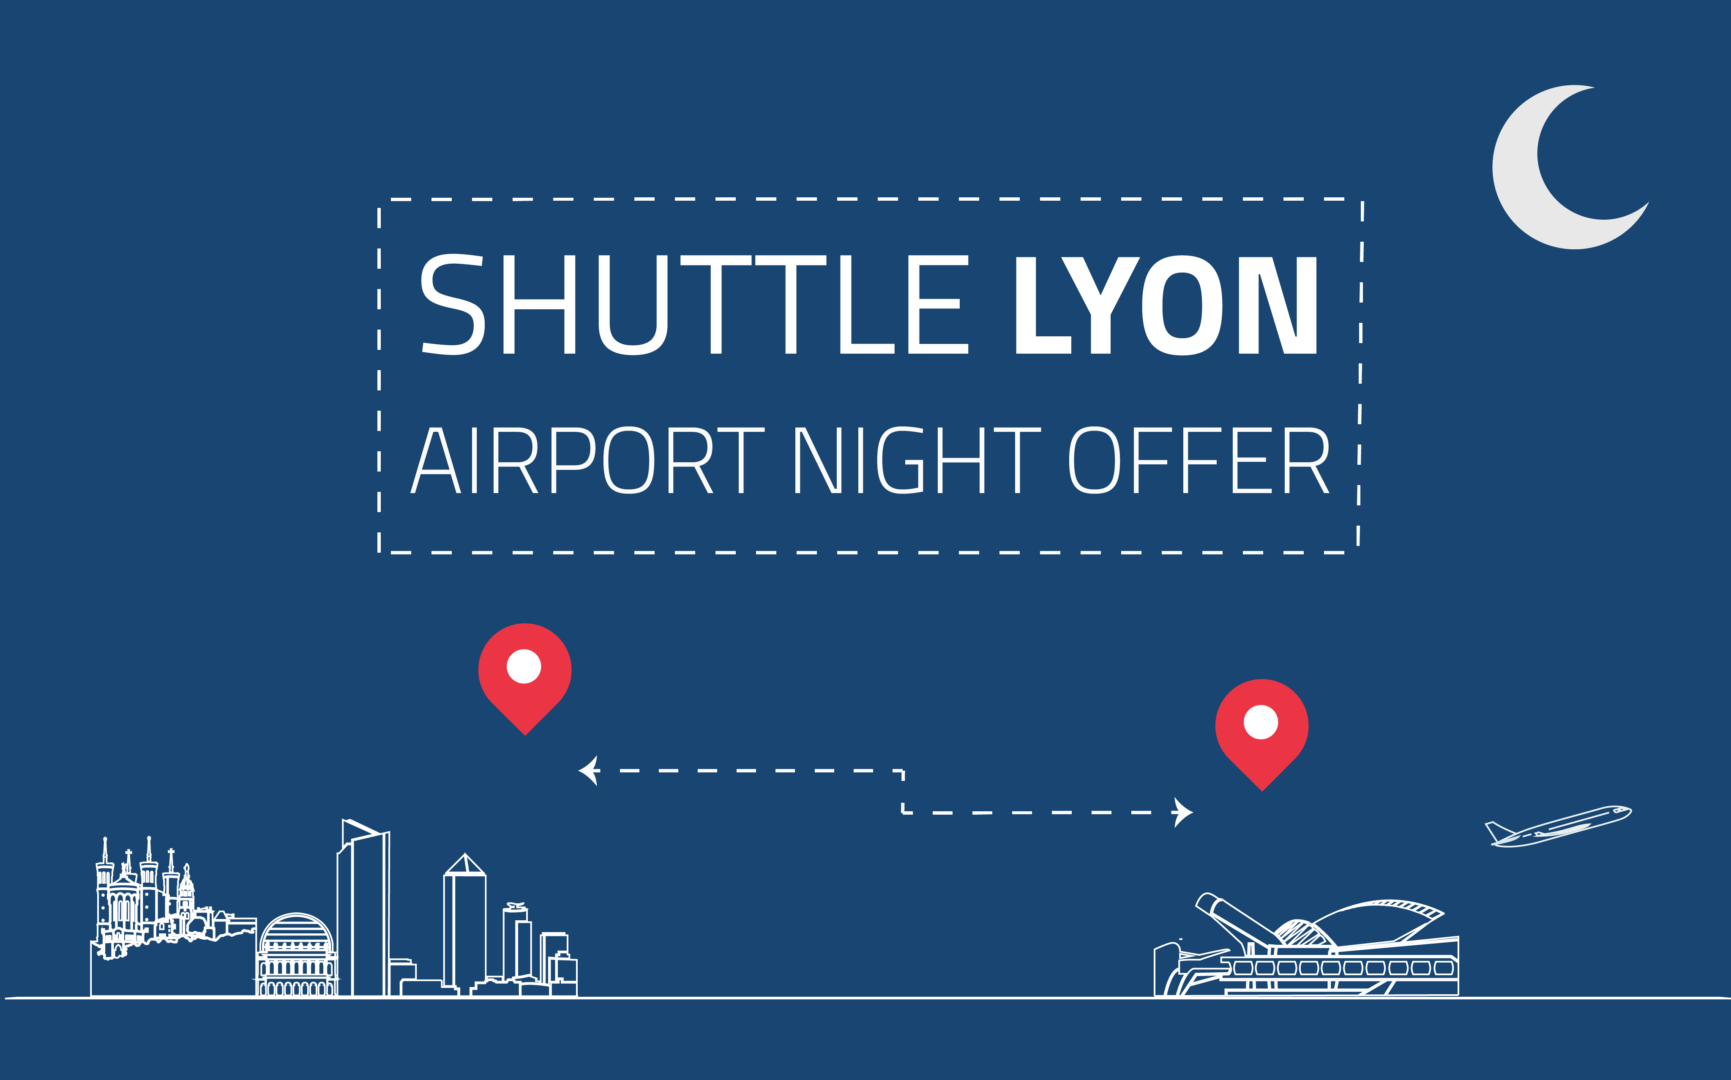 Shuttle Lyon night offer